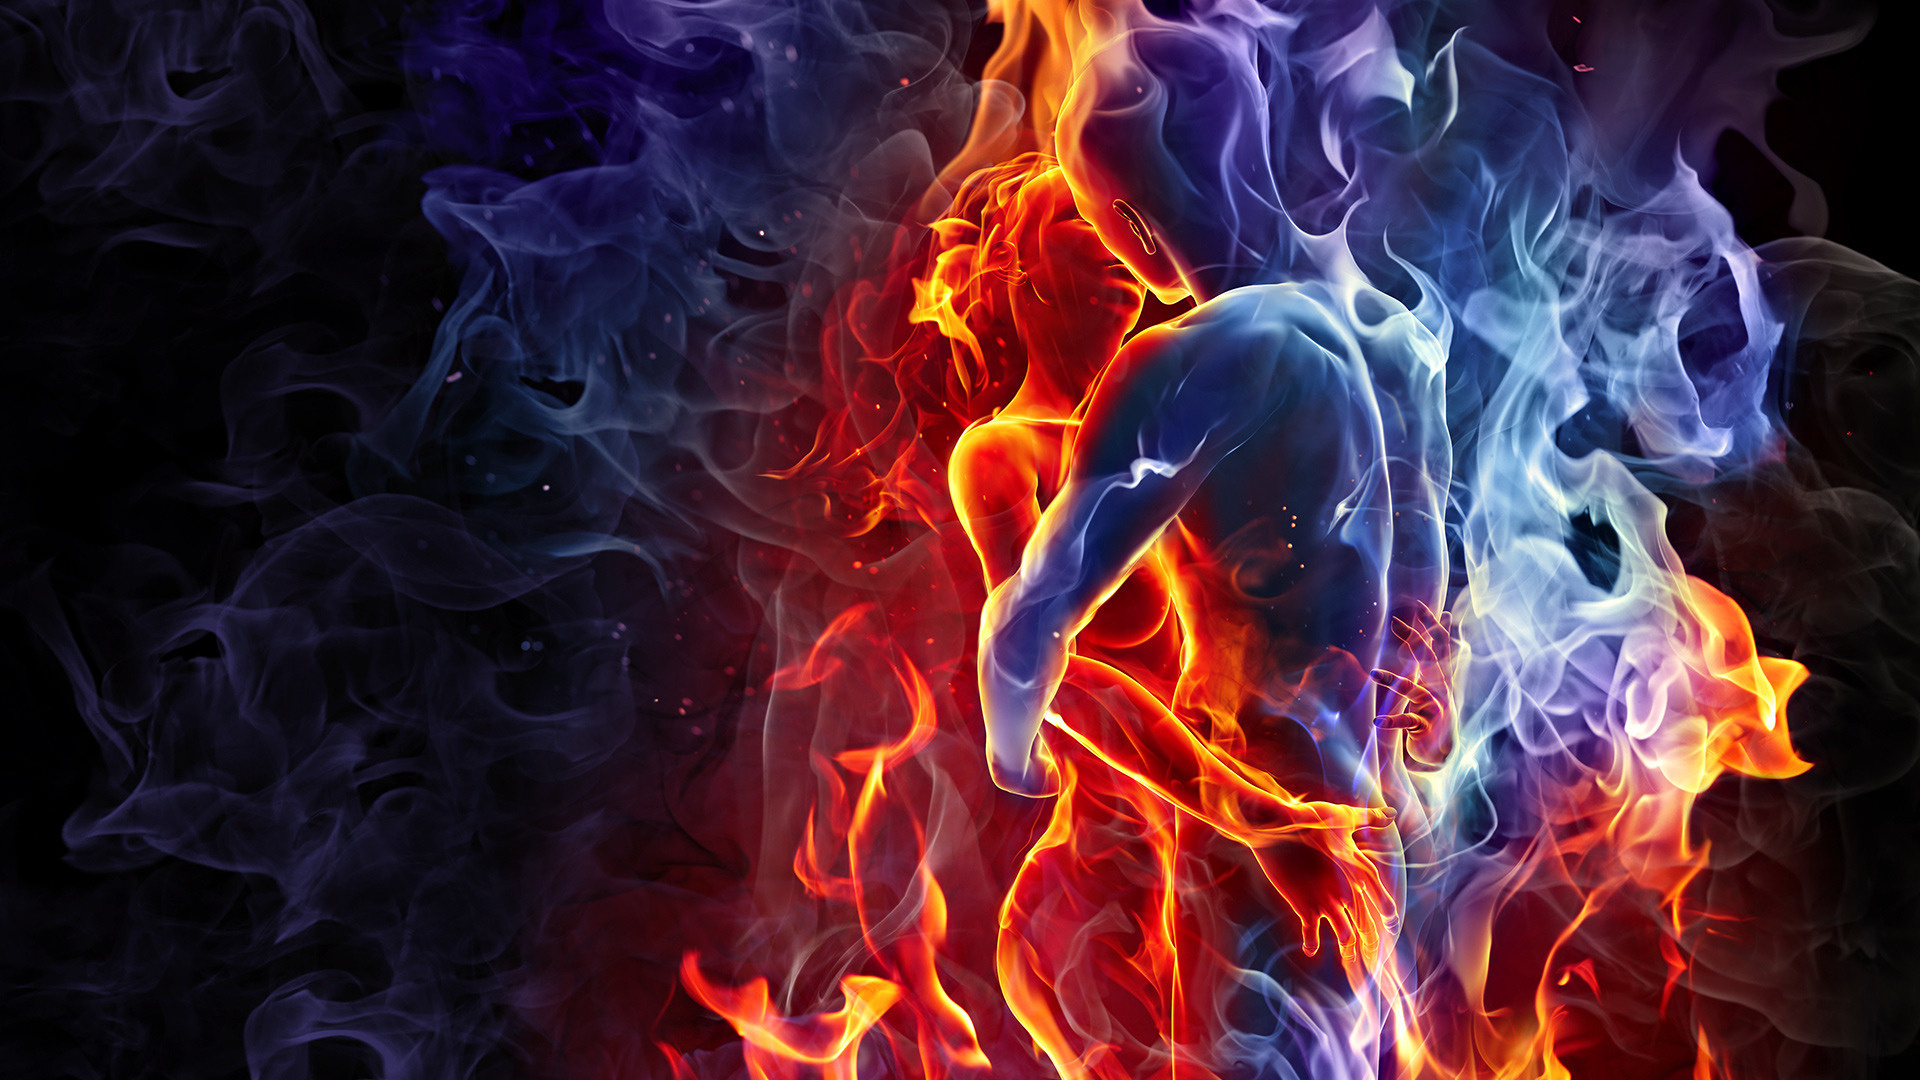 fire wallpaper couple love